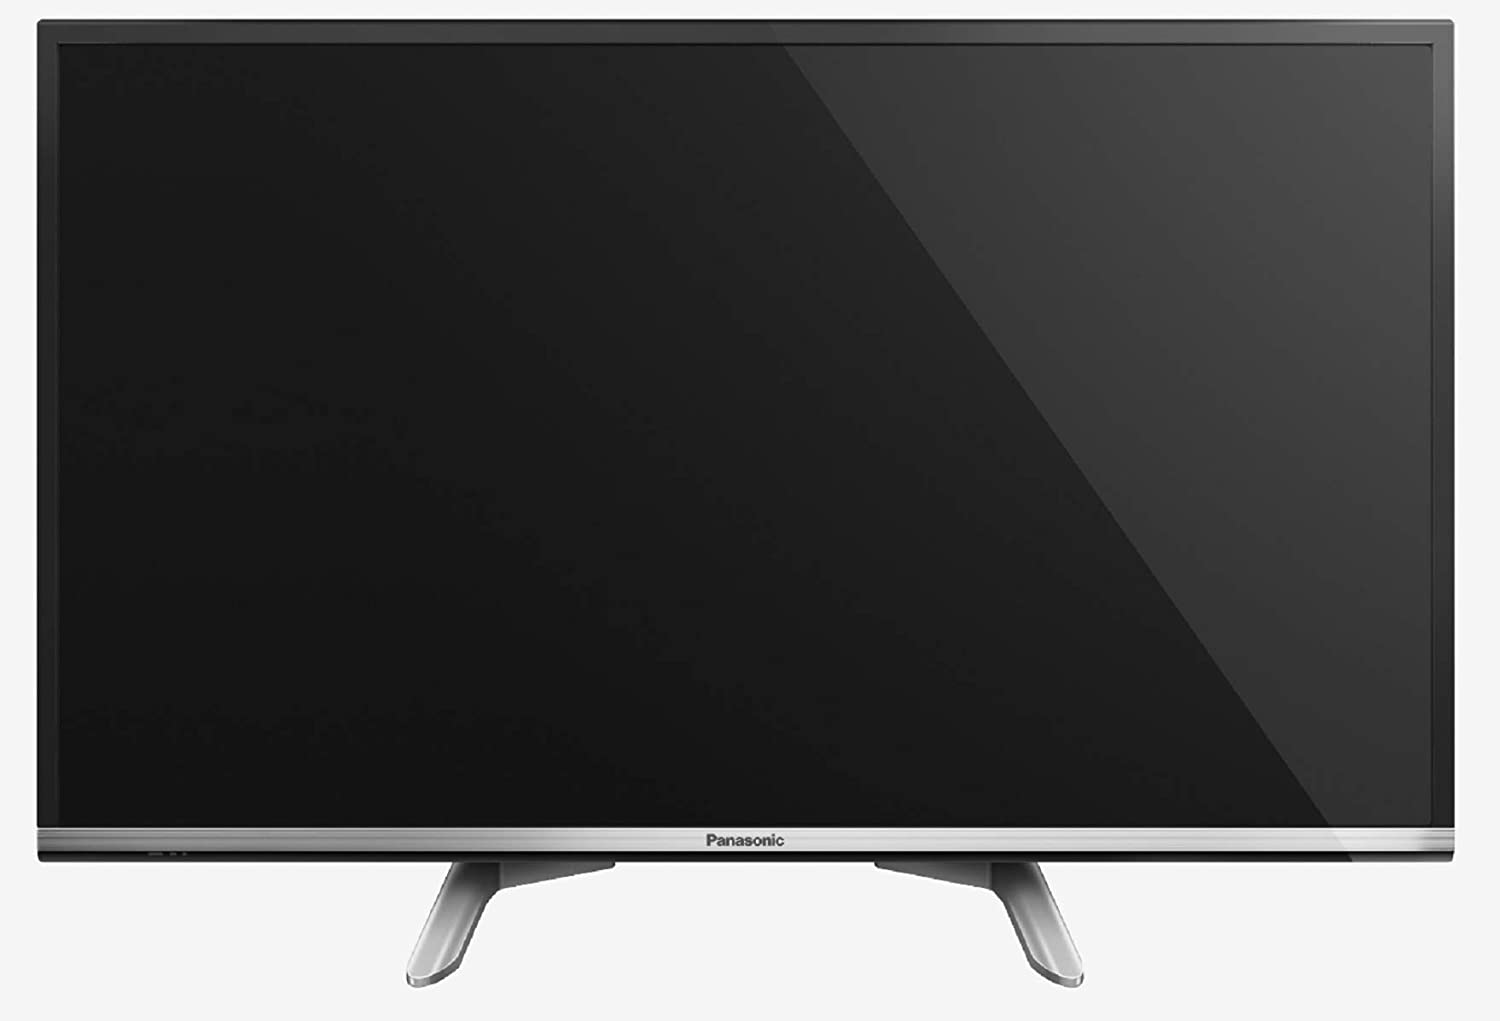 Panasonic 80 cm (32 inches) HD Ready IPS LED TV TH-32DS500D (Black) (2016 model)